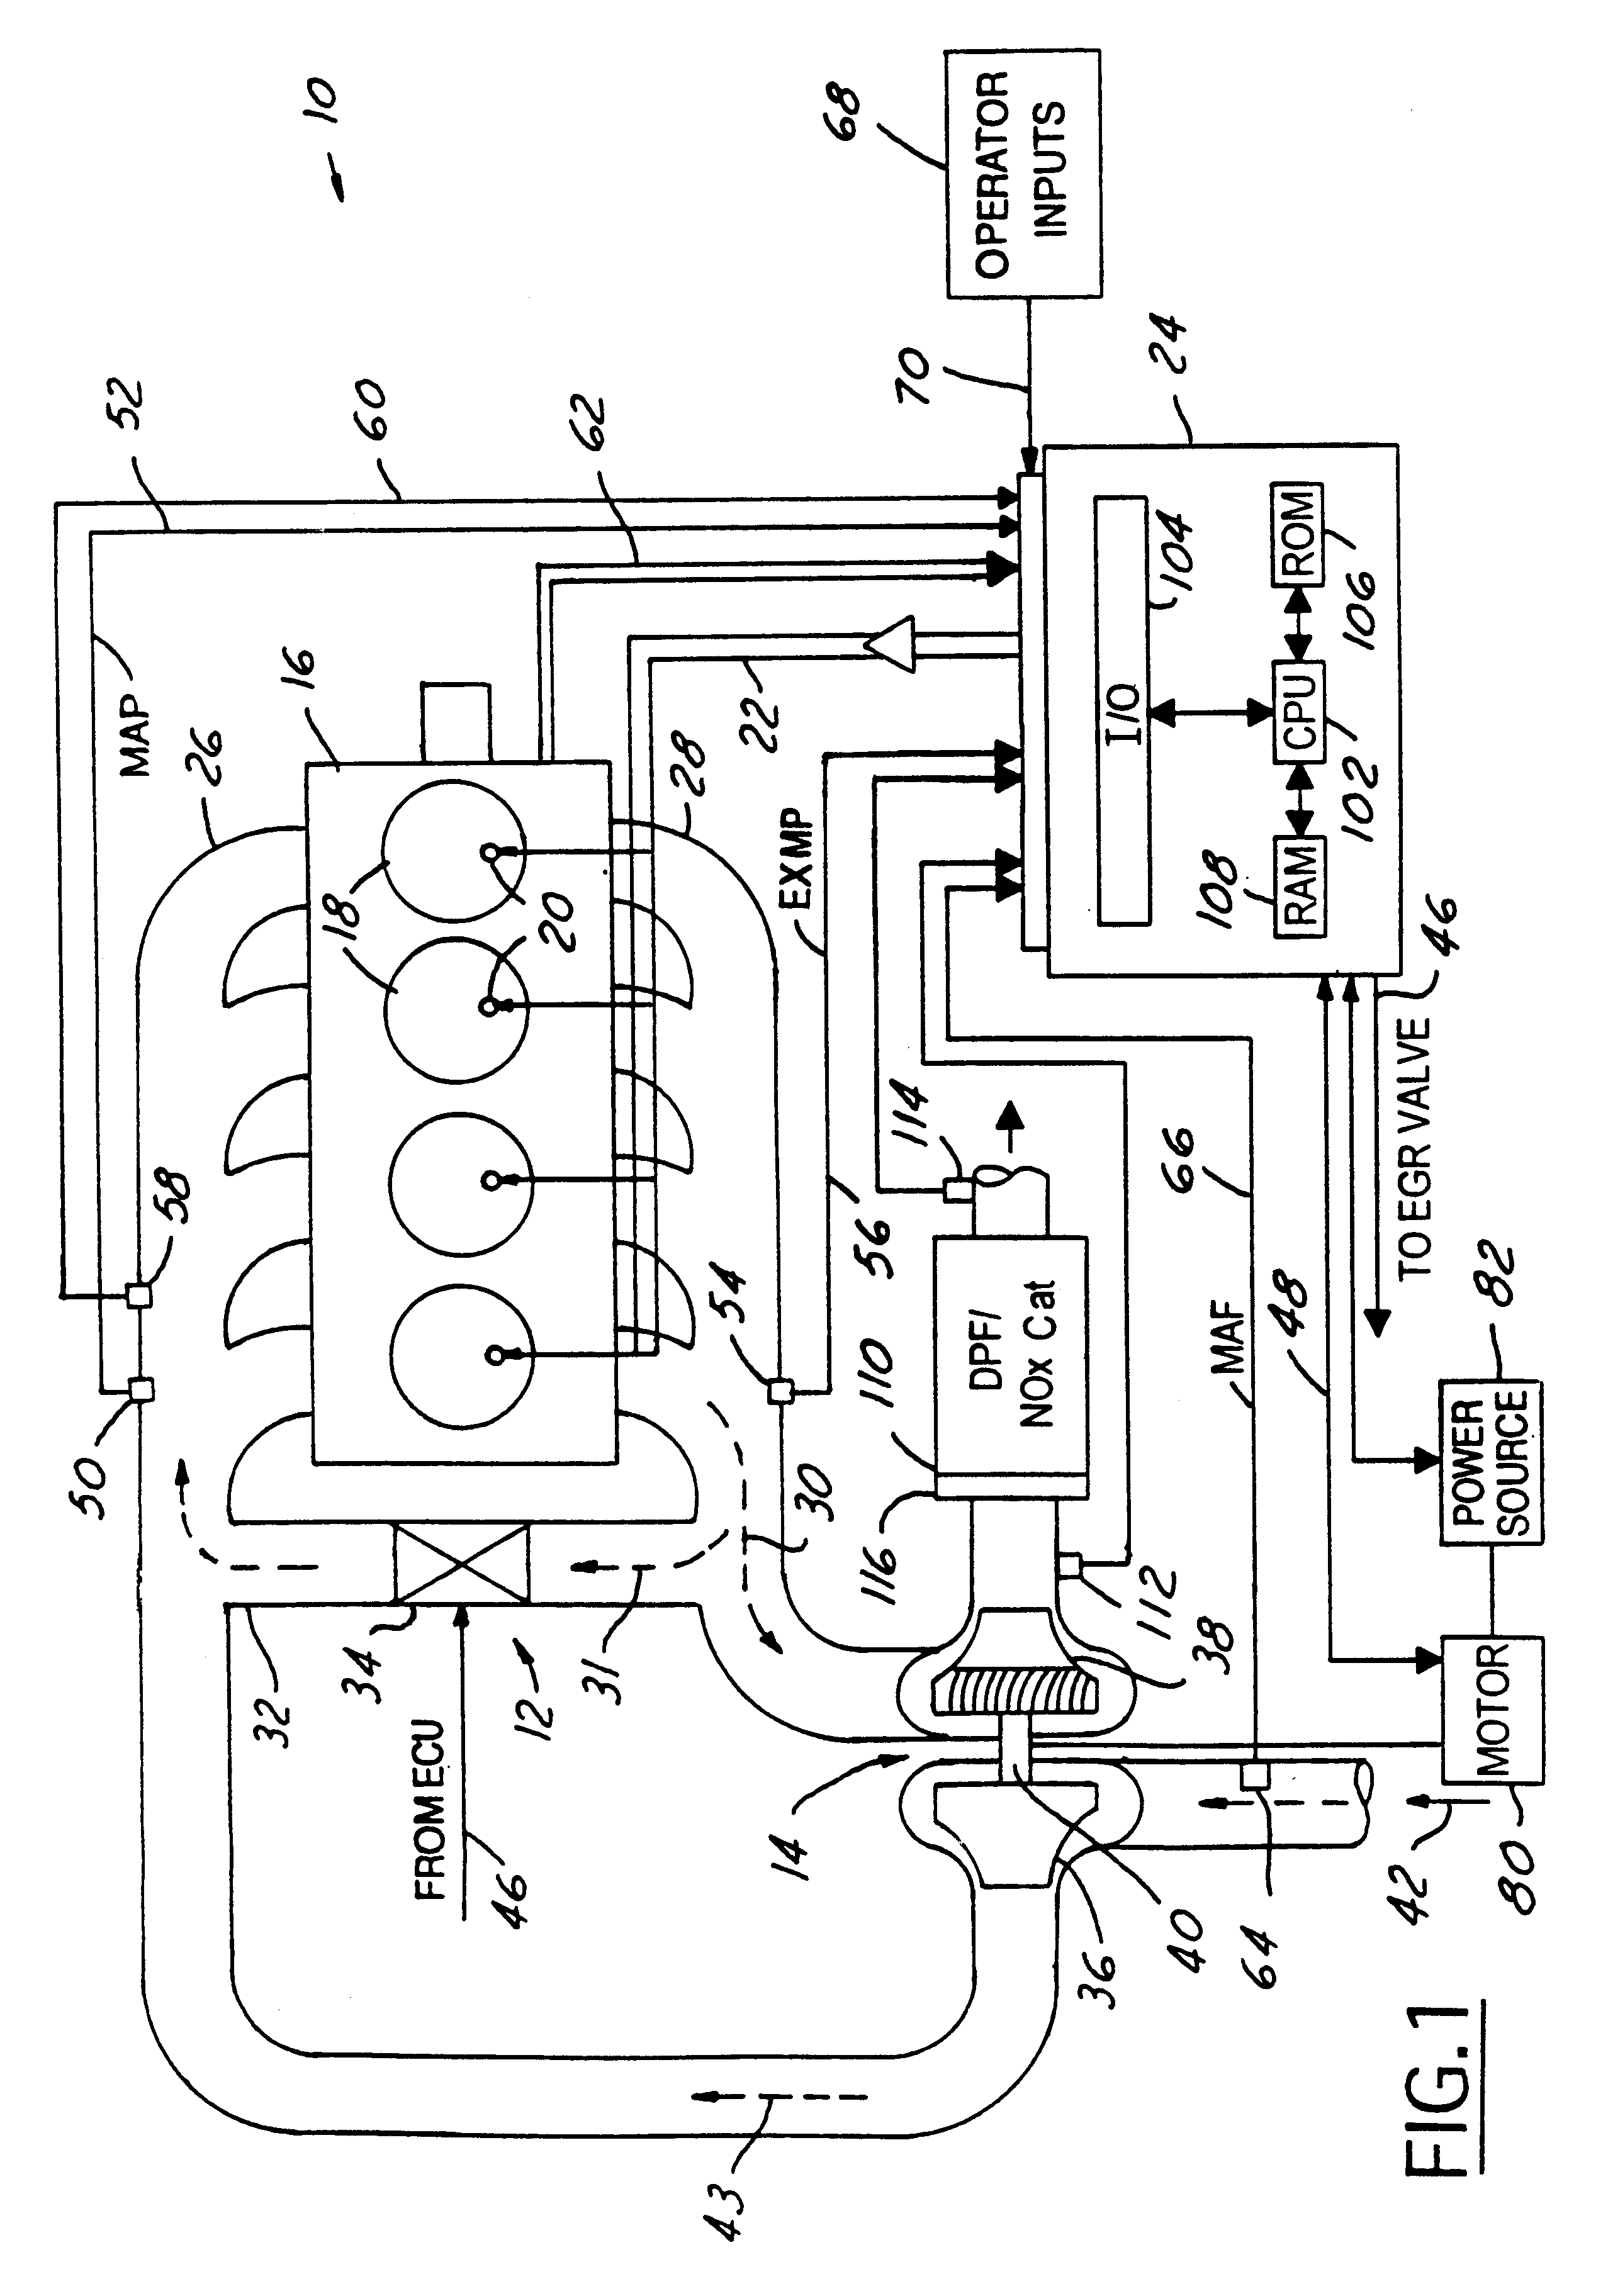 patent us6568173 control method for turbocharged diesel engine patent drawing